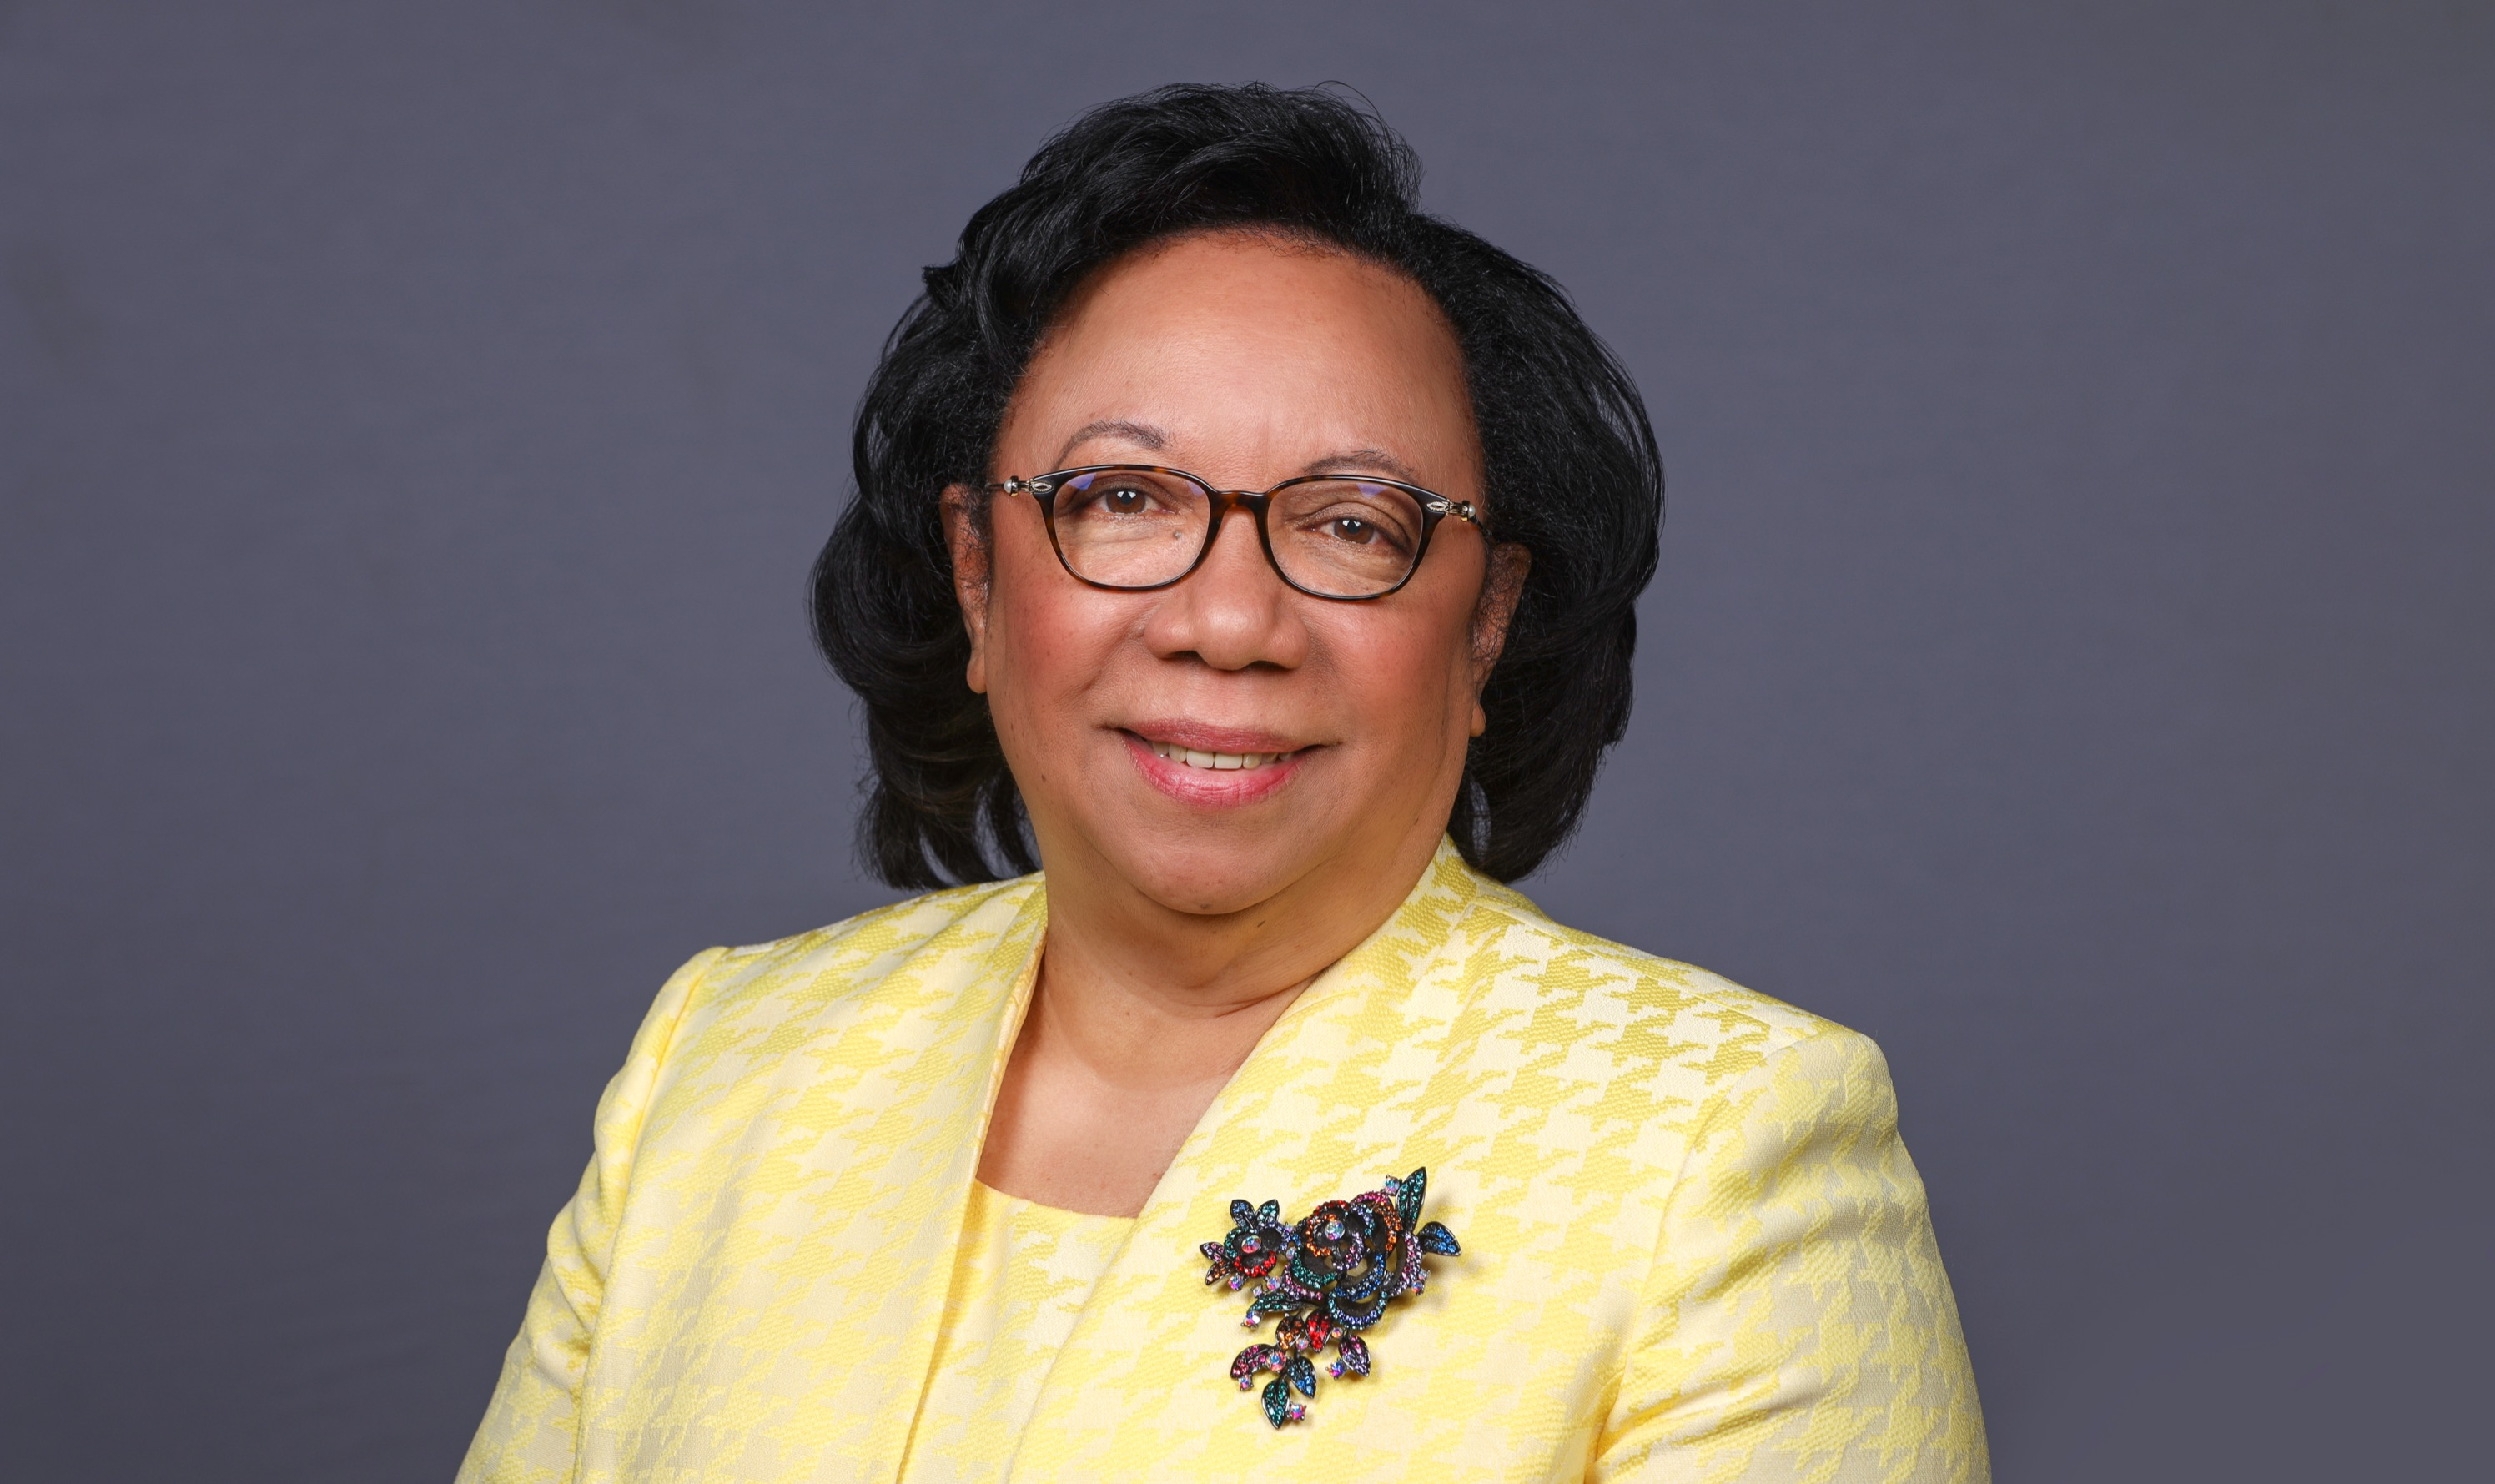 Dr. June Smith